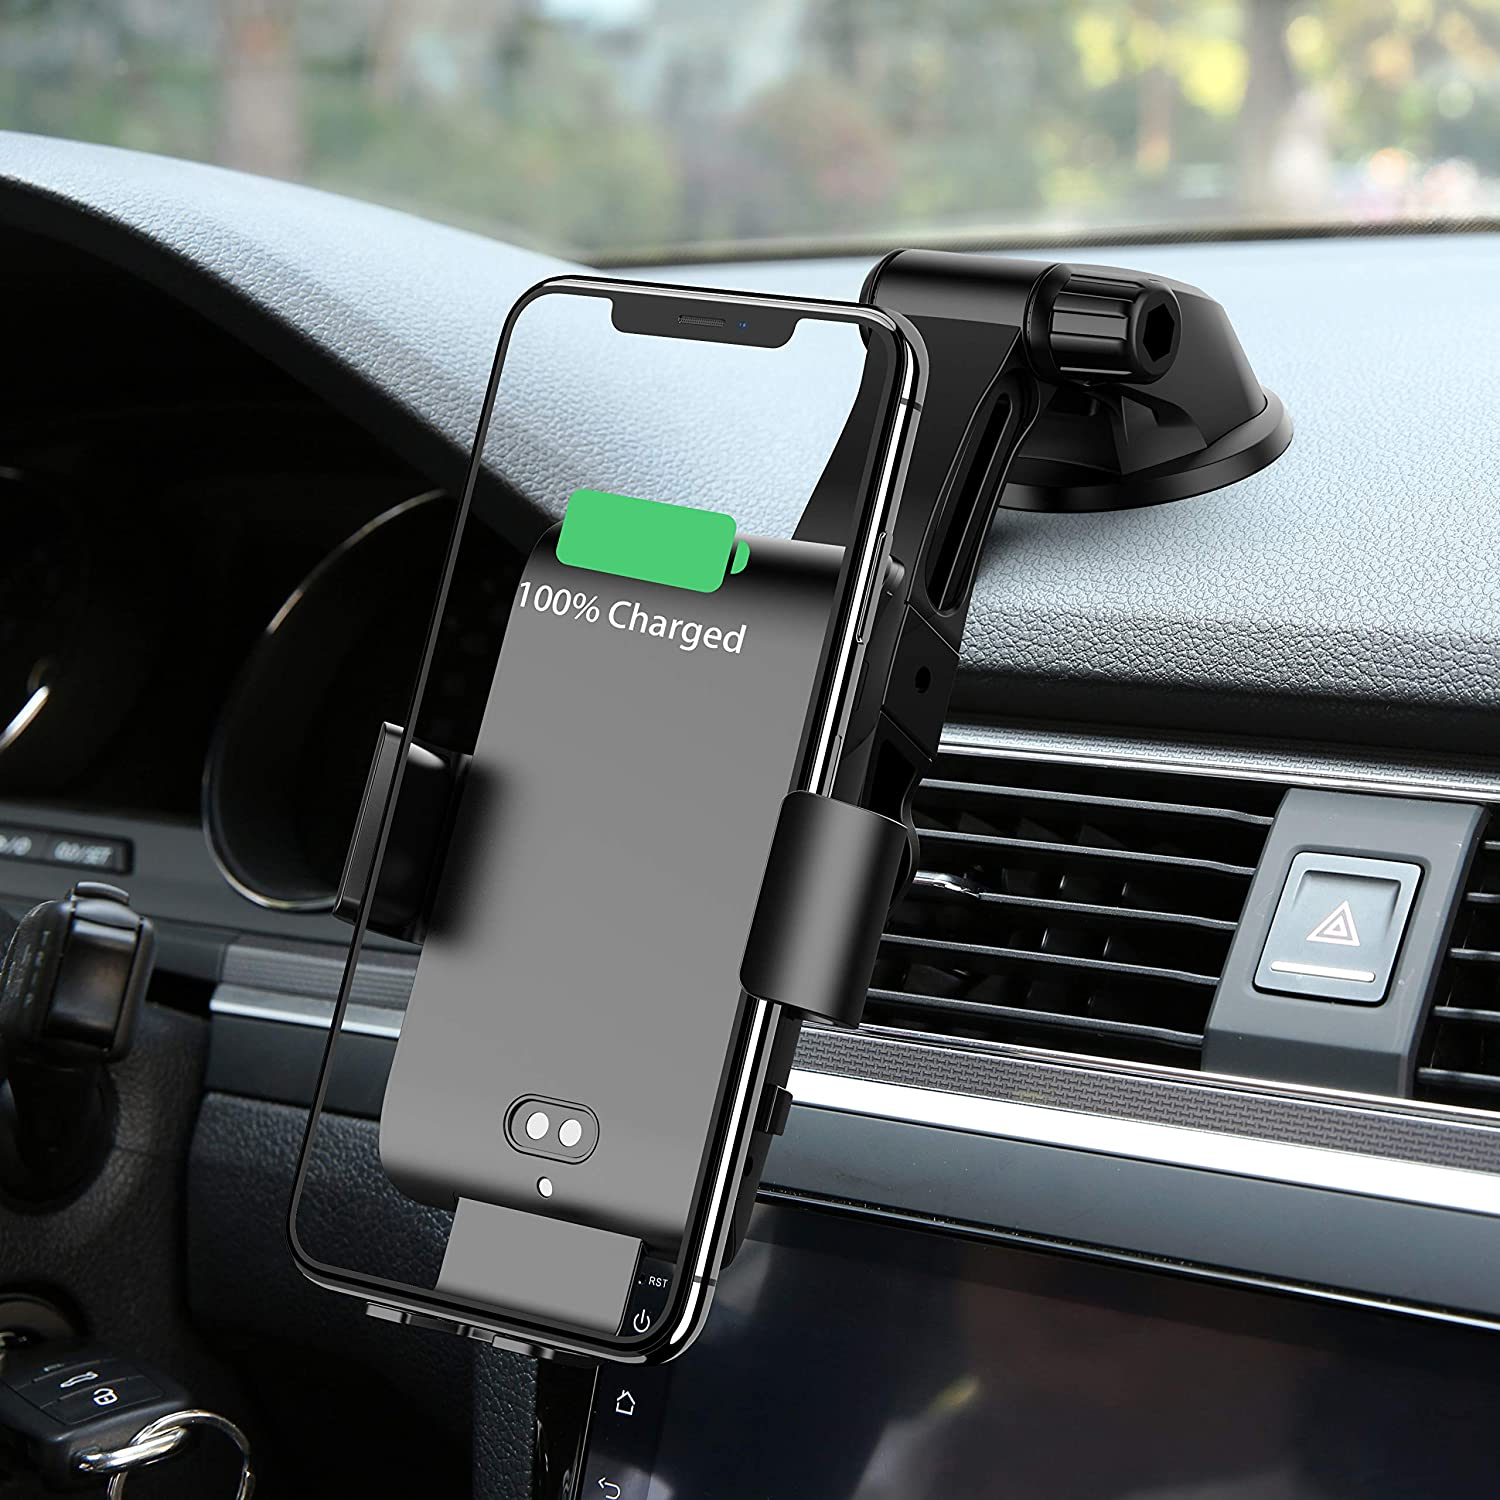 Mankiw Car Charger with Automatic Clamping